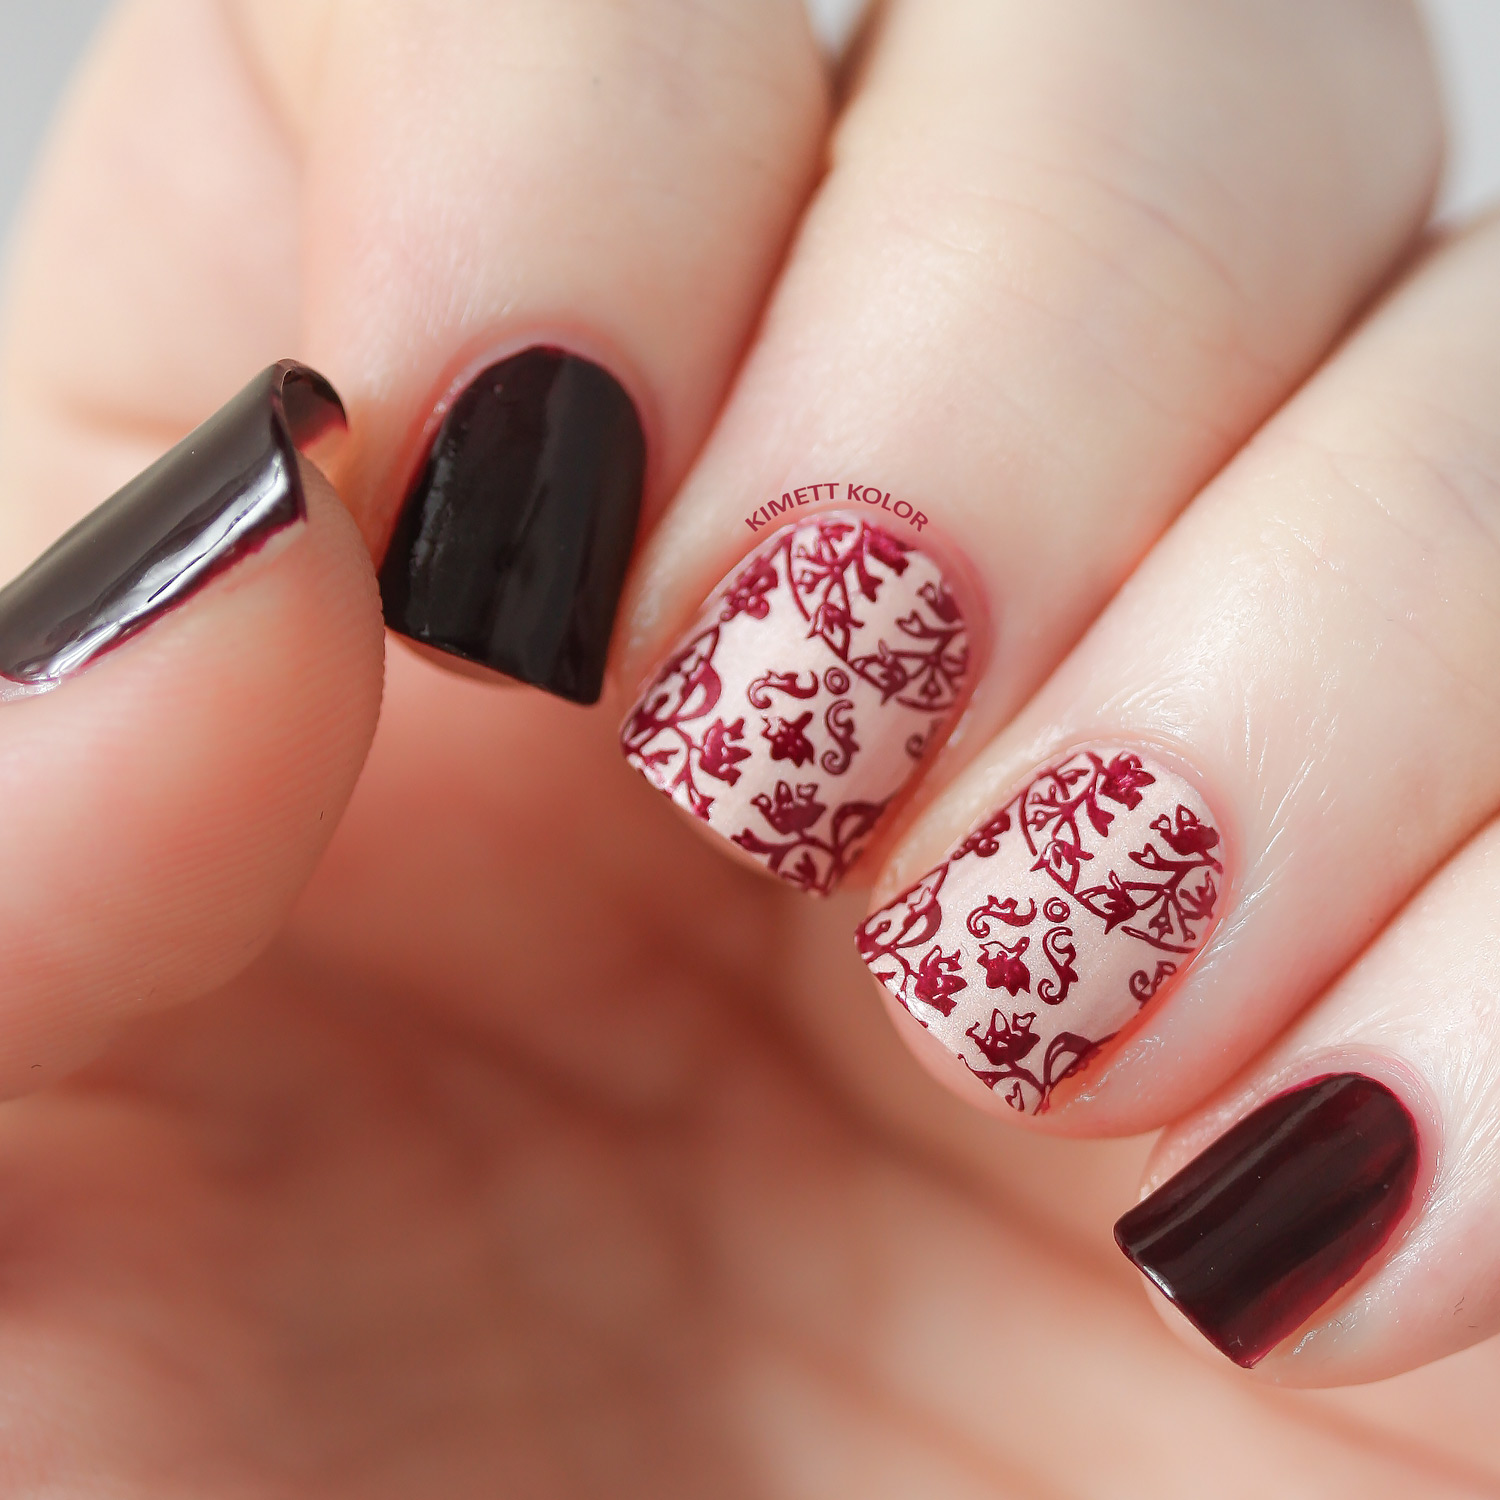 Garnet and Carnation January Nail Art by KimettKolor